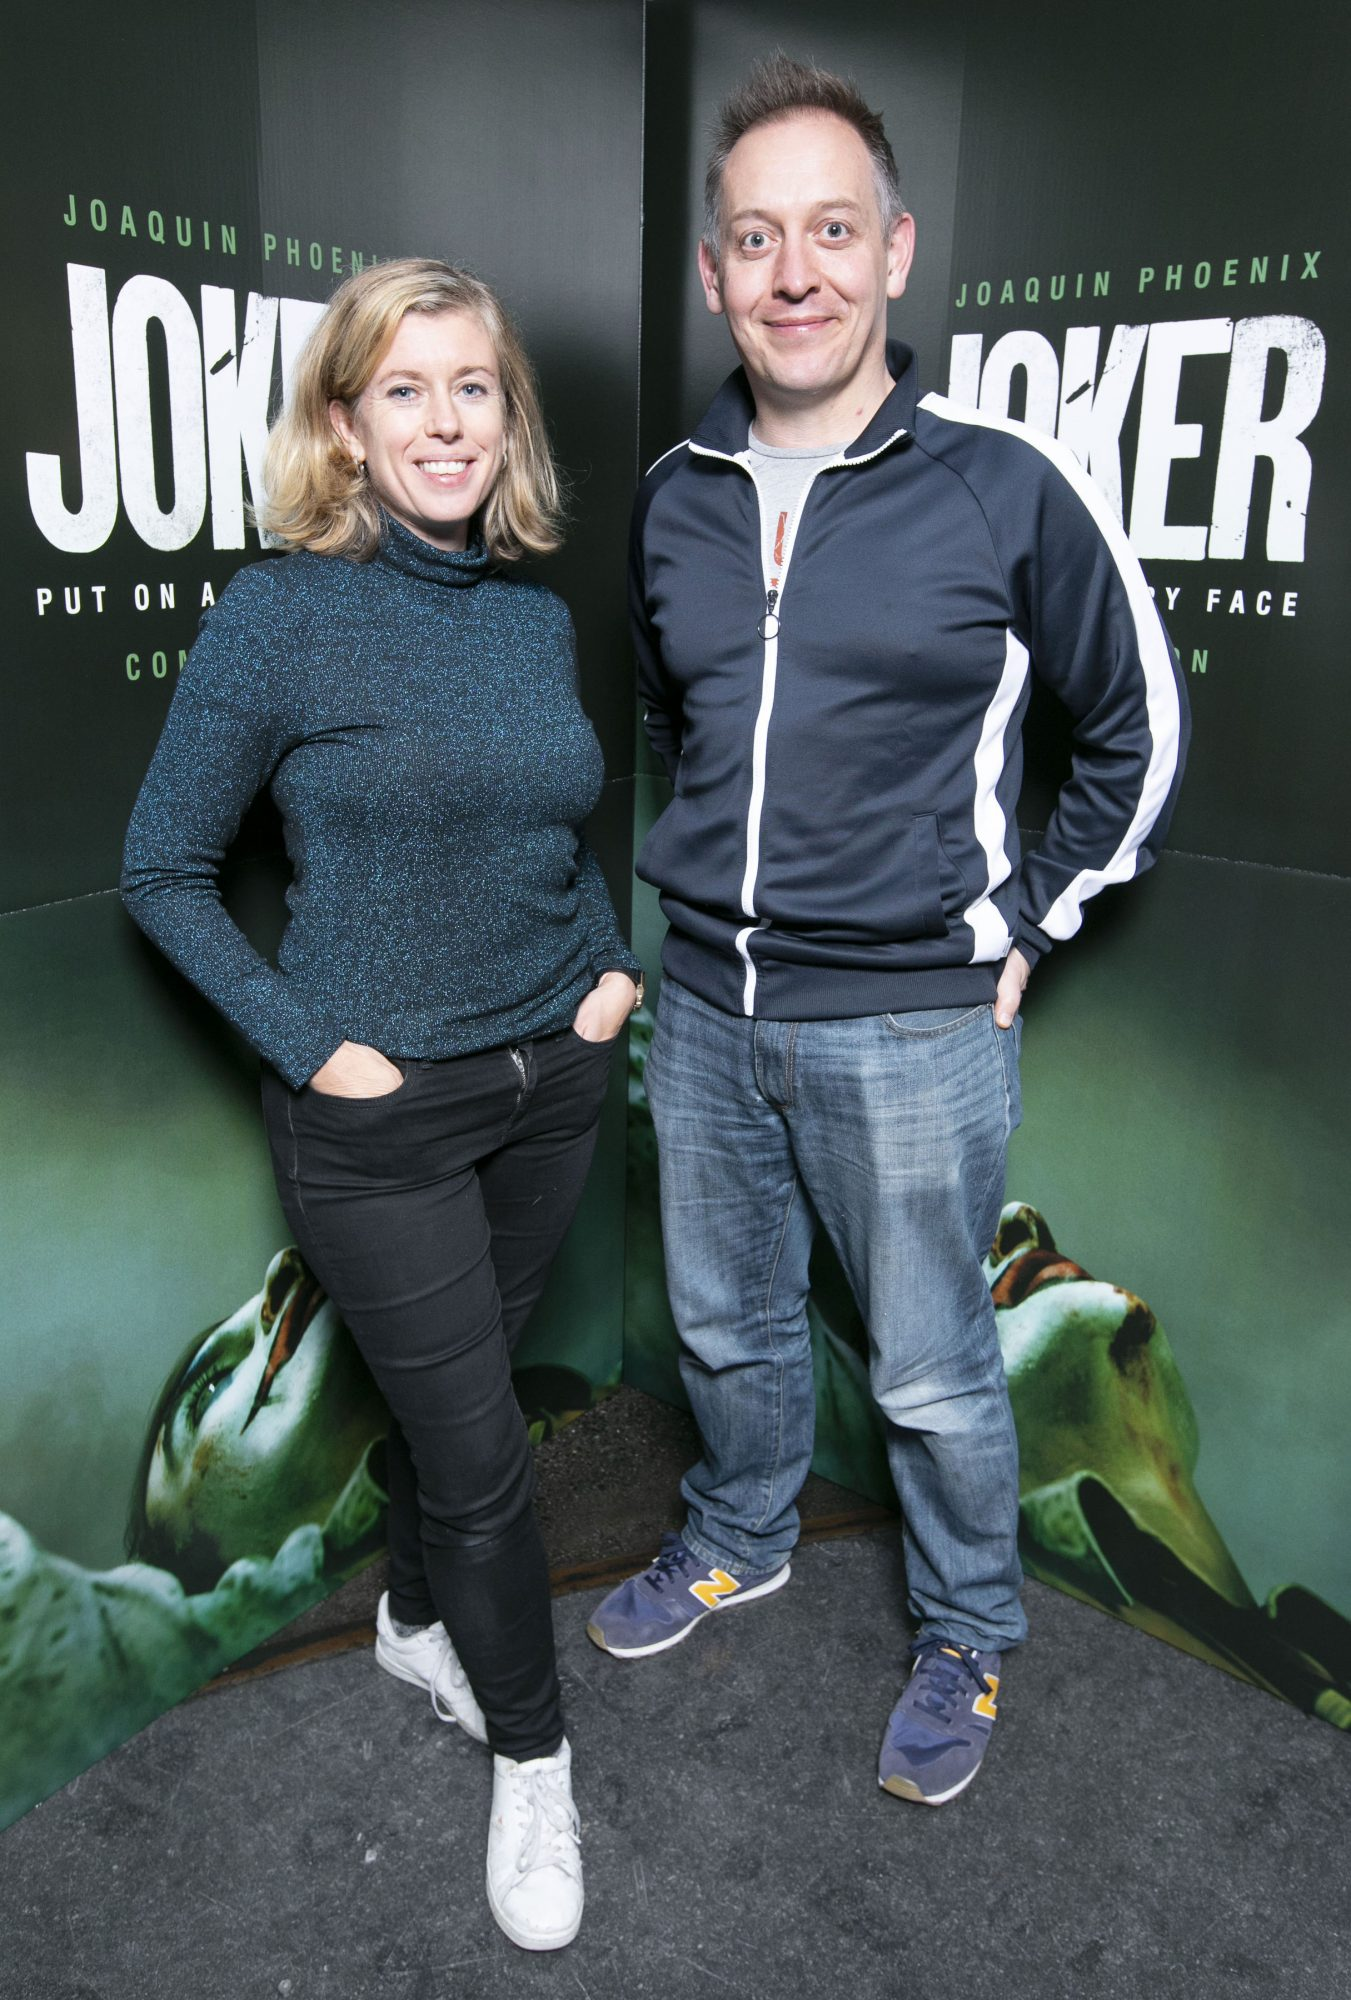 Lesley Conroy and Stewart Roche at the special 70mm screening of Todd Phillips Joker at the IFI Dublin. Pic: Brian McEvoy Photography